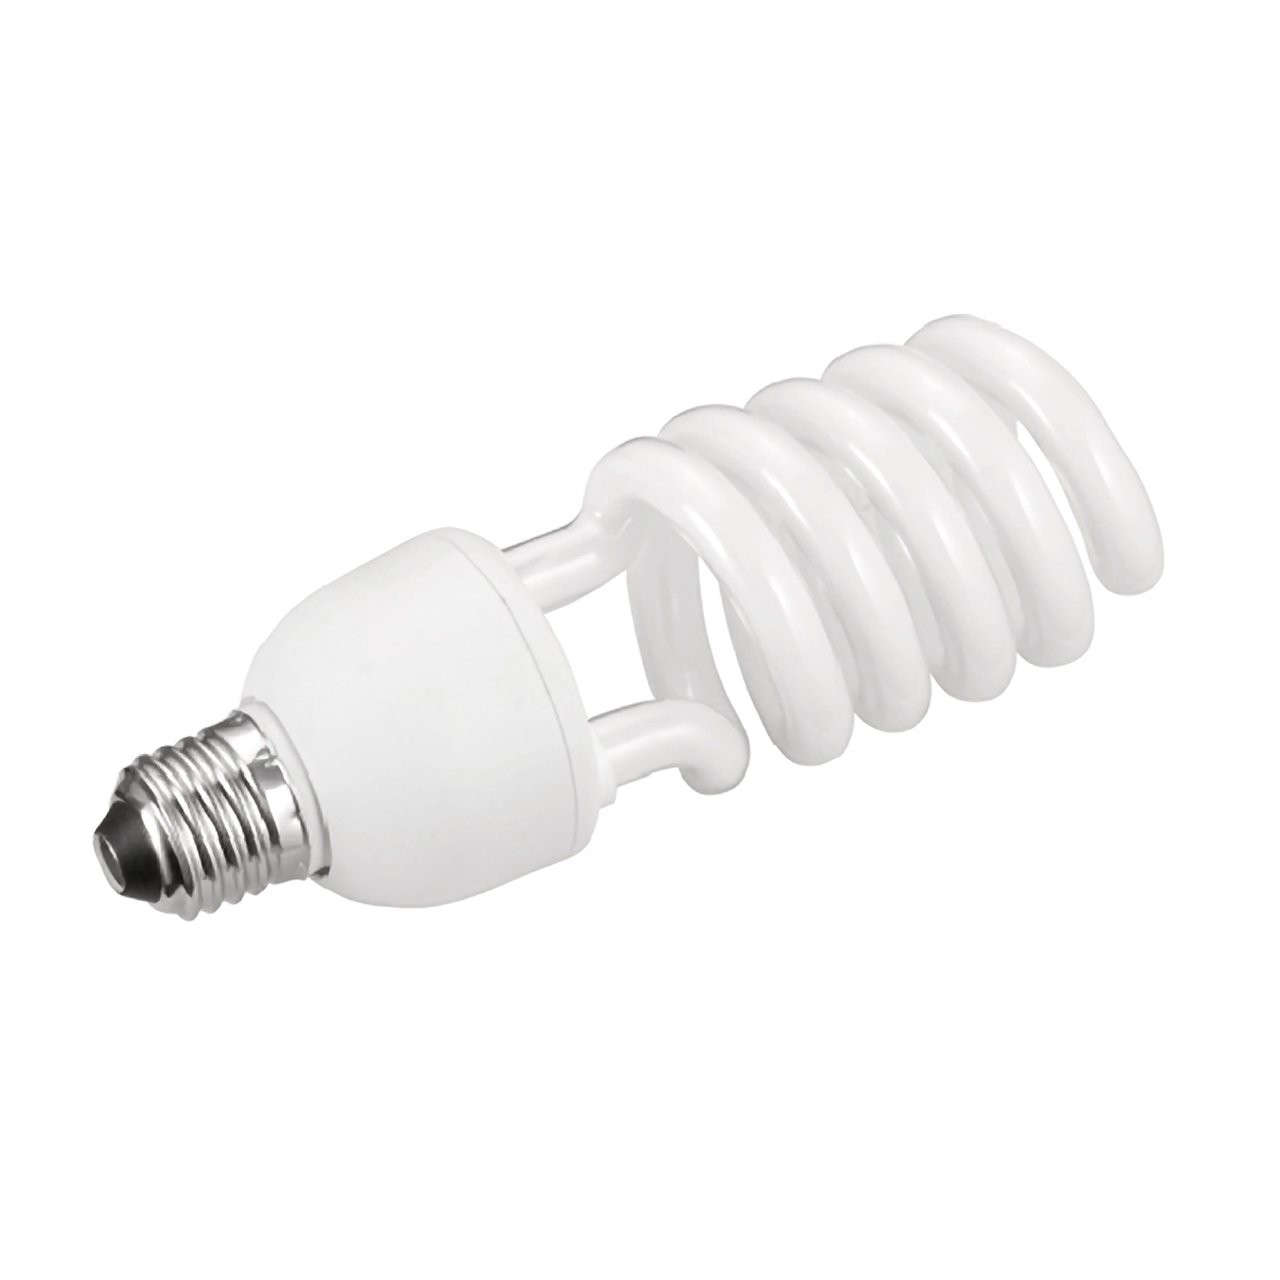 45W Studio Light Bulb 5500K CFL